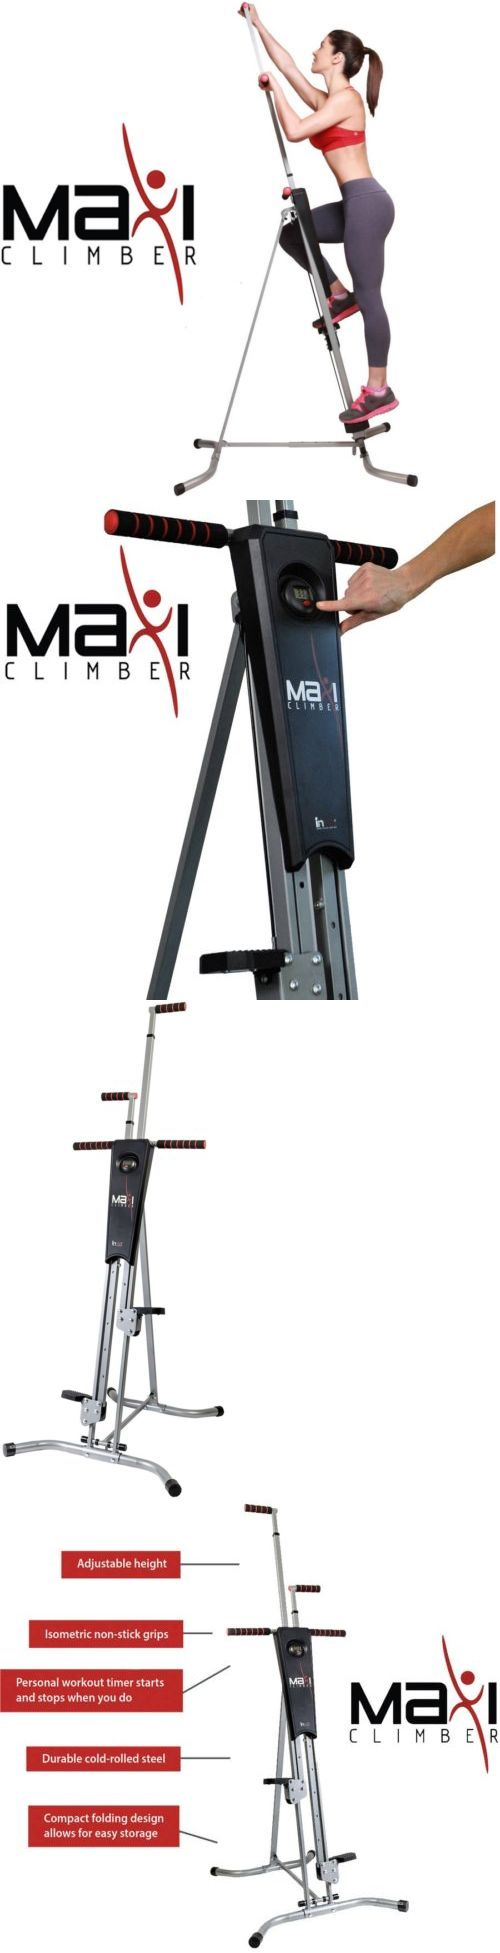 Stair Machines and Steppers 28062: Maxiclimber Total Body Workout Fitness Exercise Training Equipment Vertical Step -> BUY IT NOW ONLY: $299.99 on eBay!